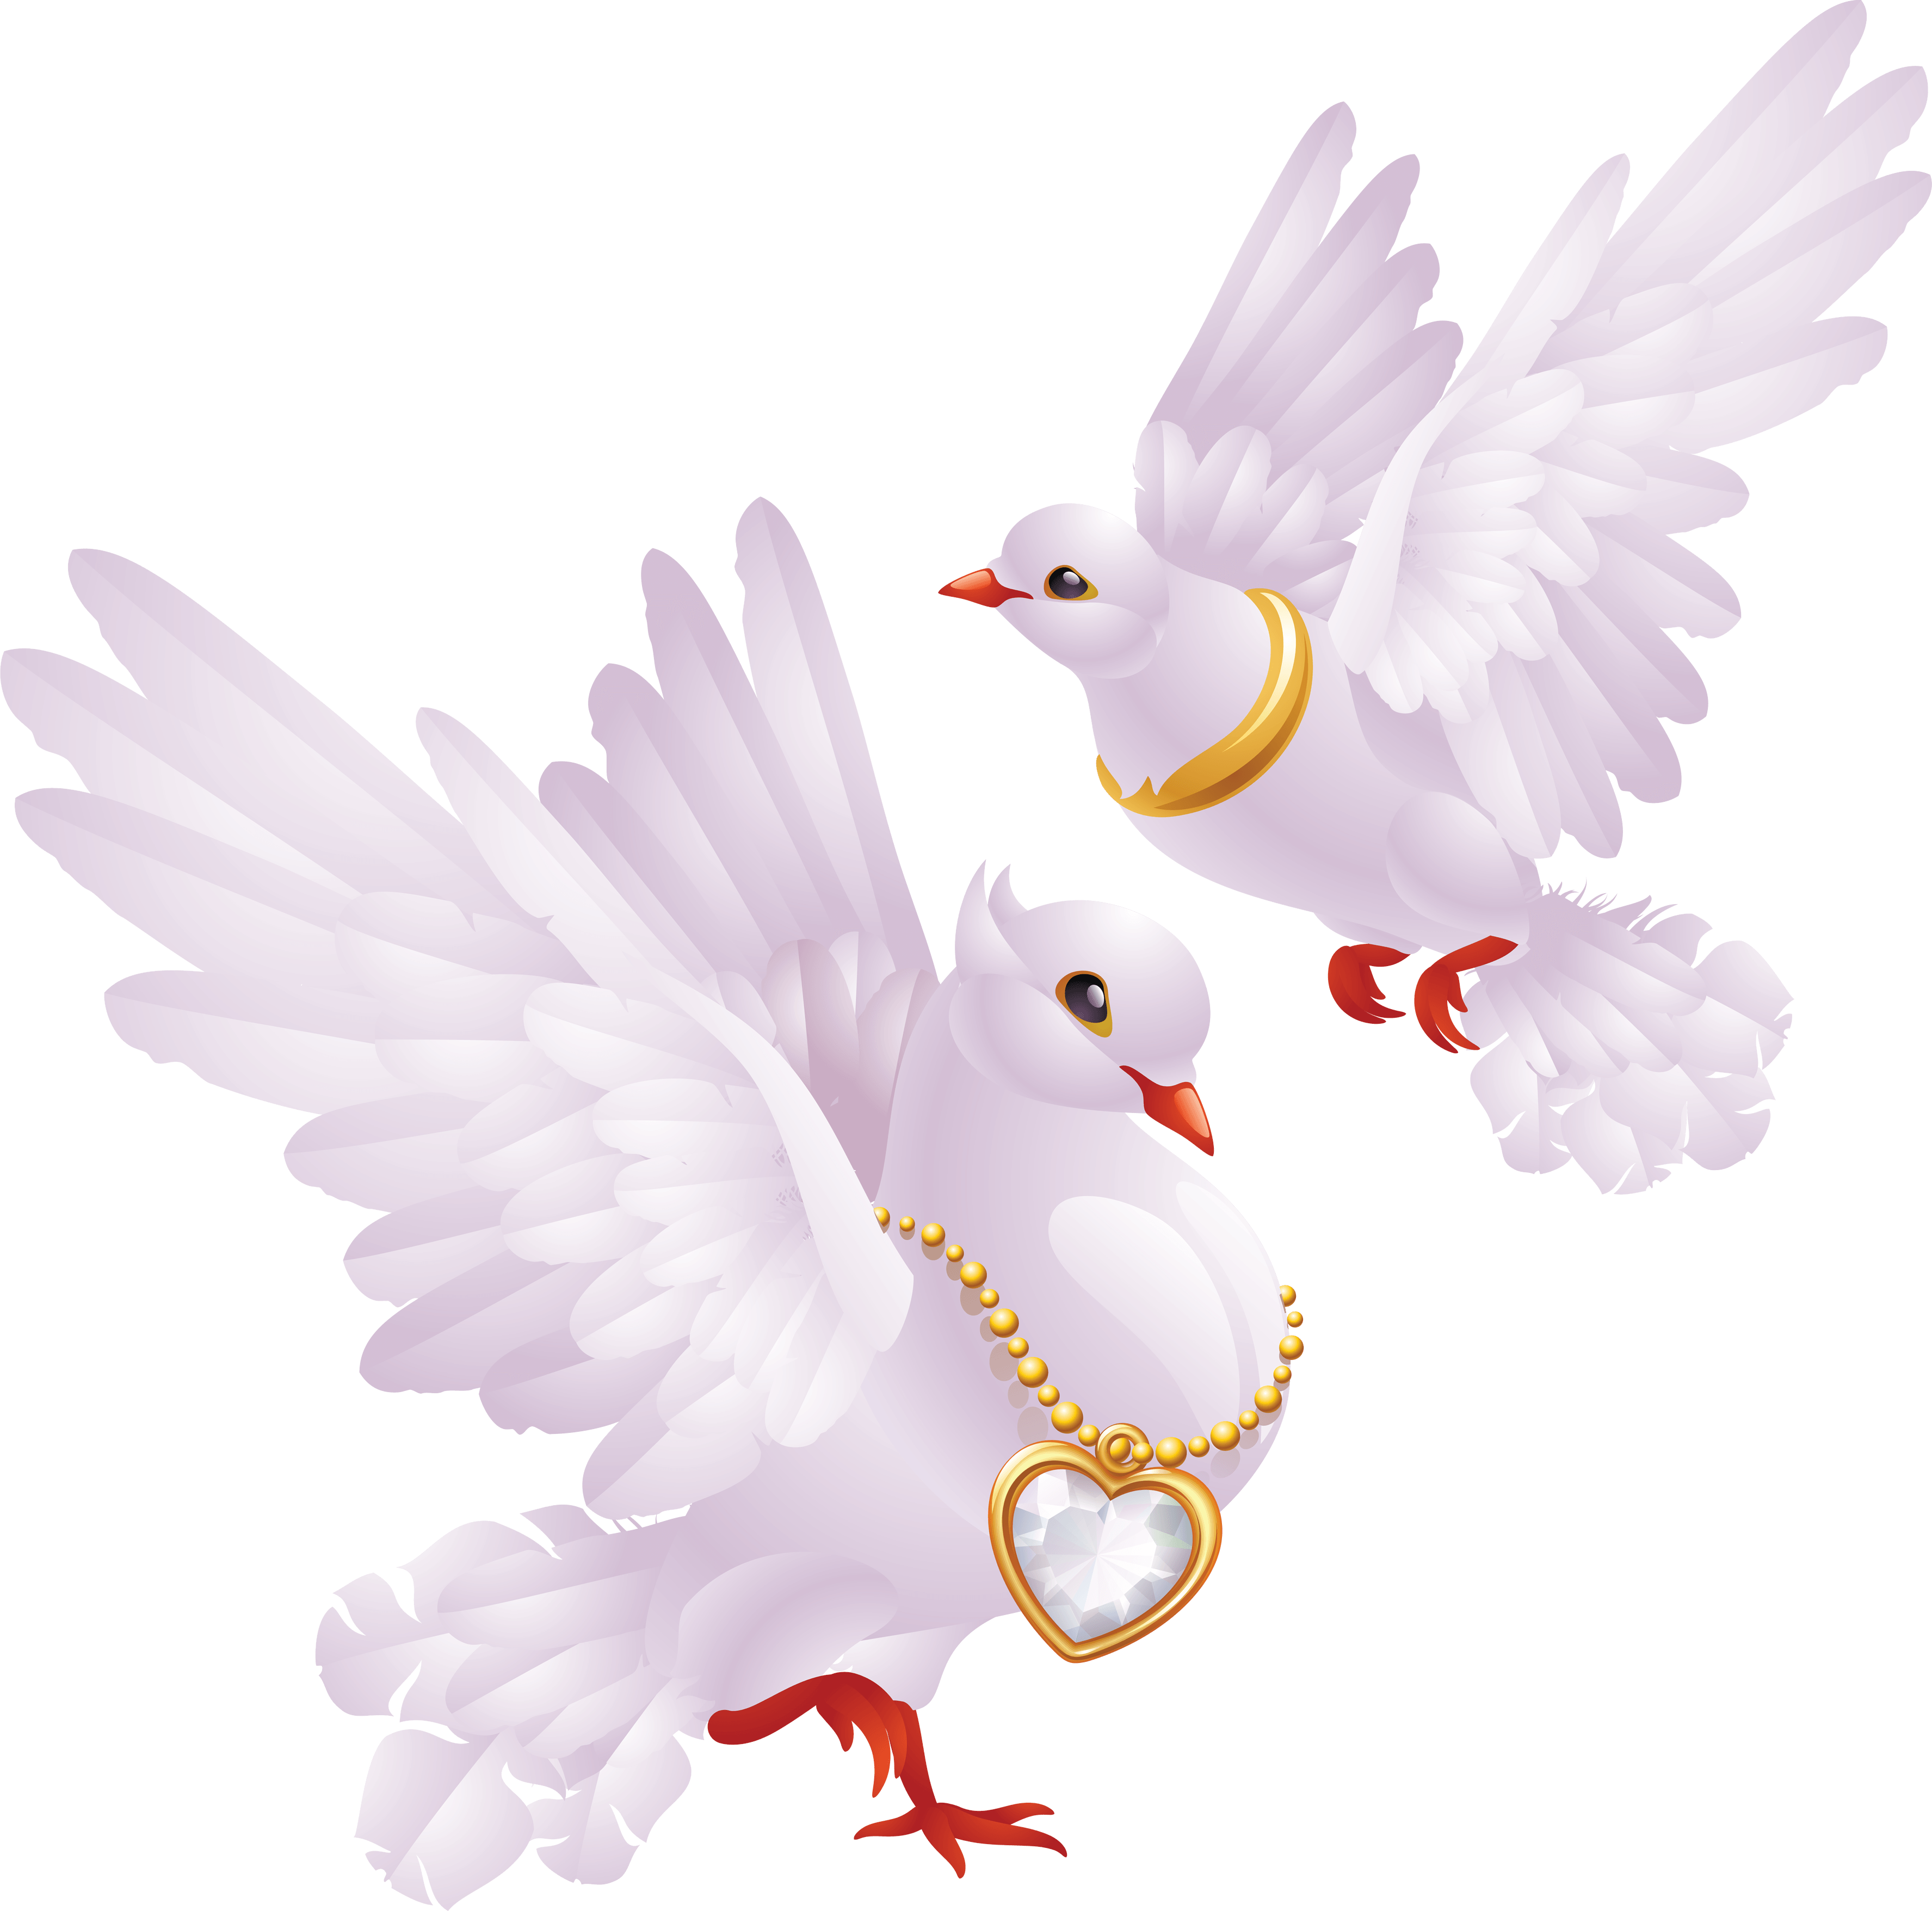 White Pigeons Png Image PNG Image